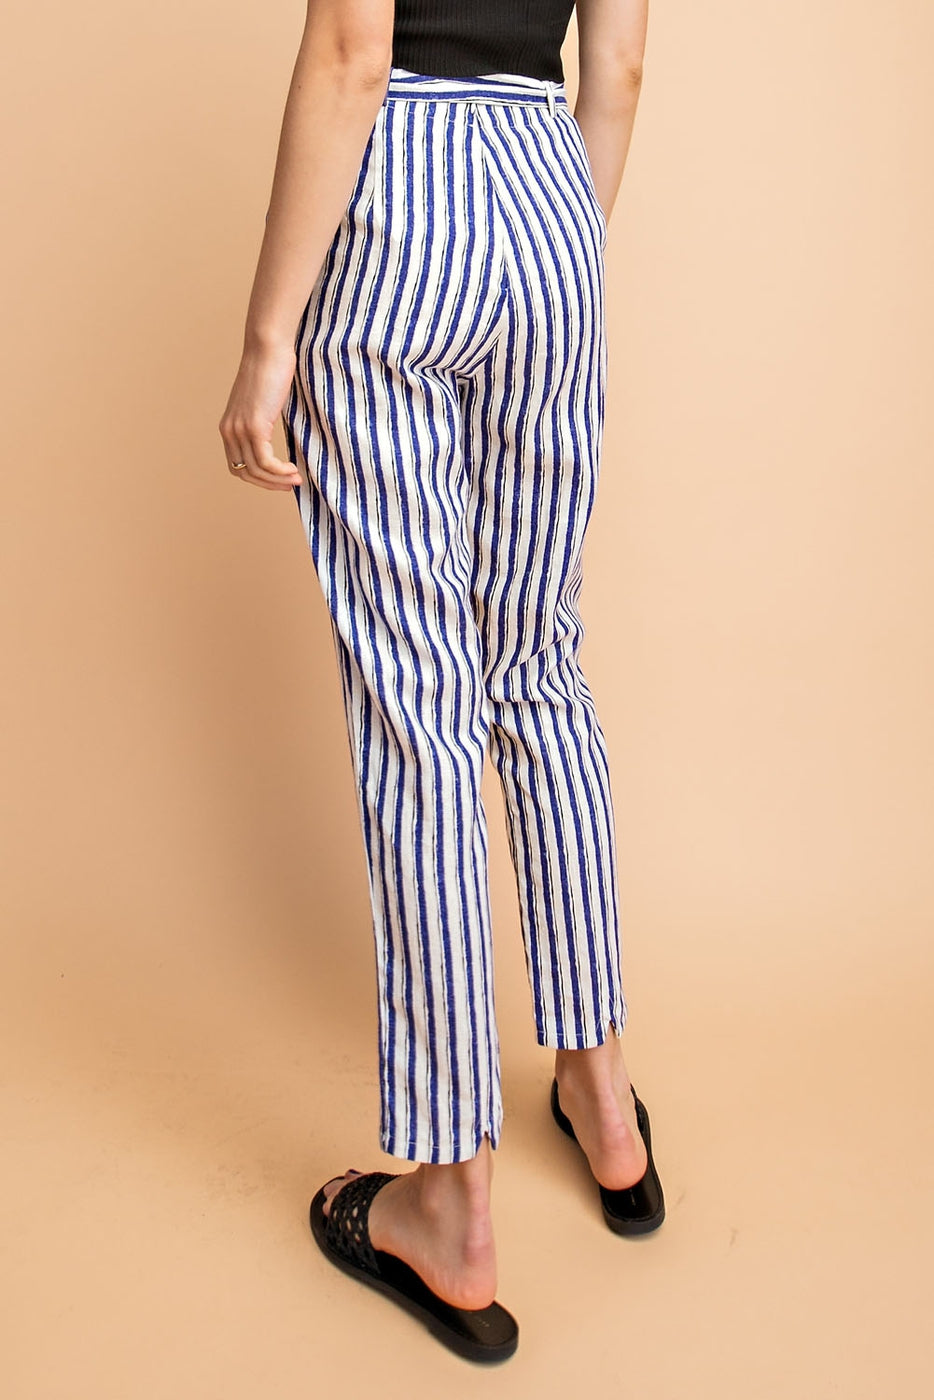 High Waisted Linen Striped Pant with Belt Siin Bees